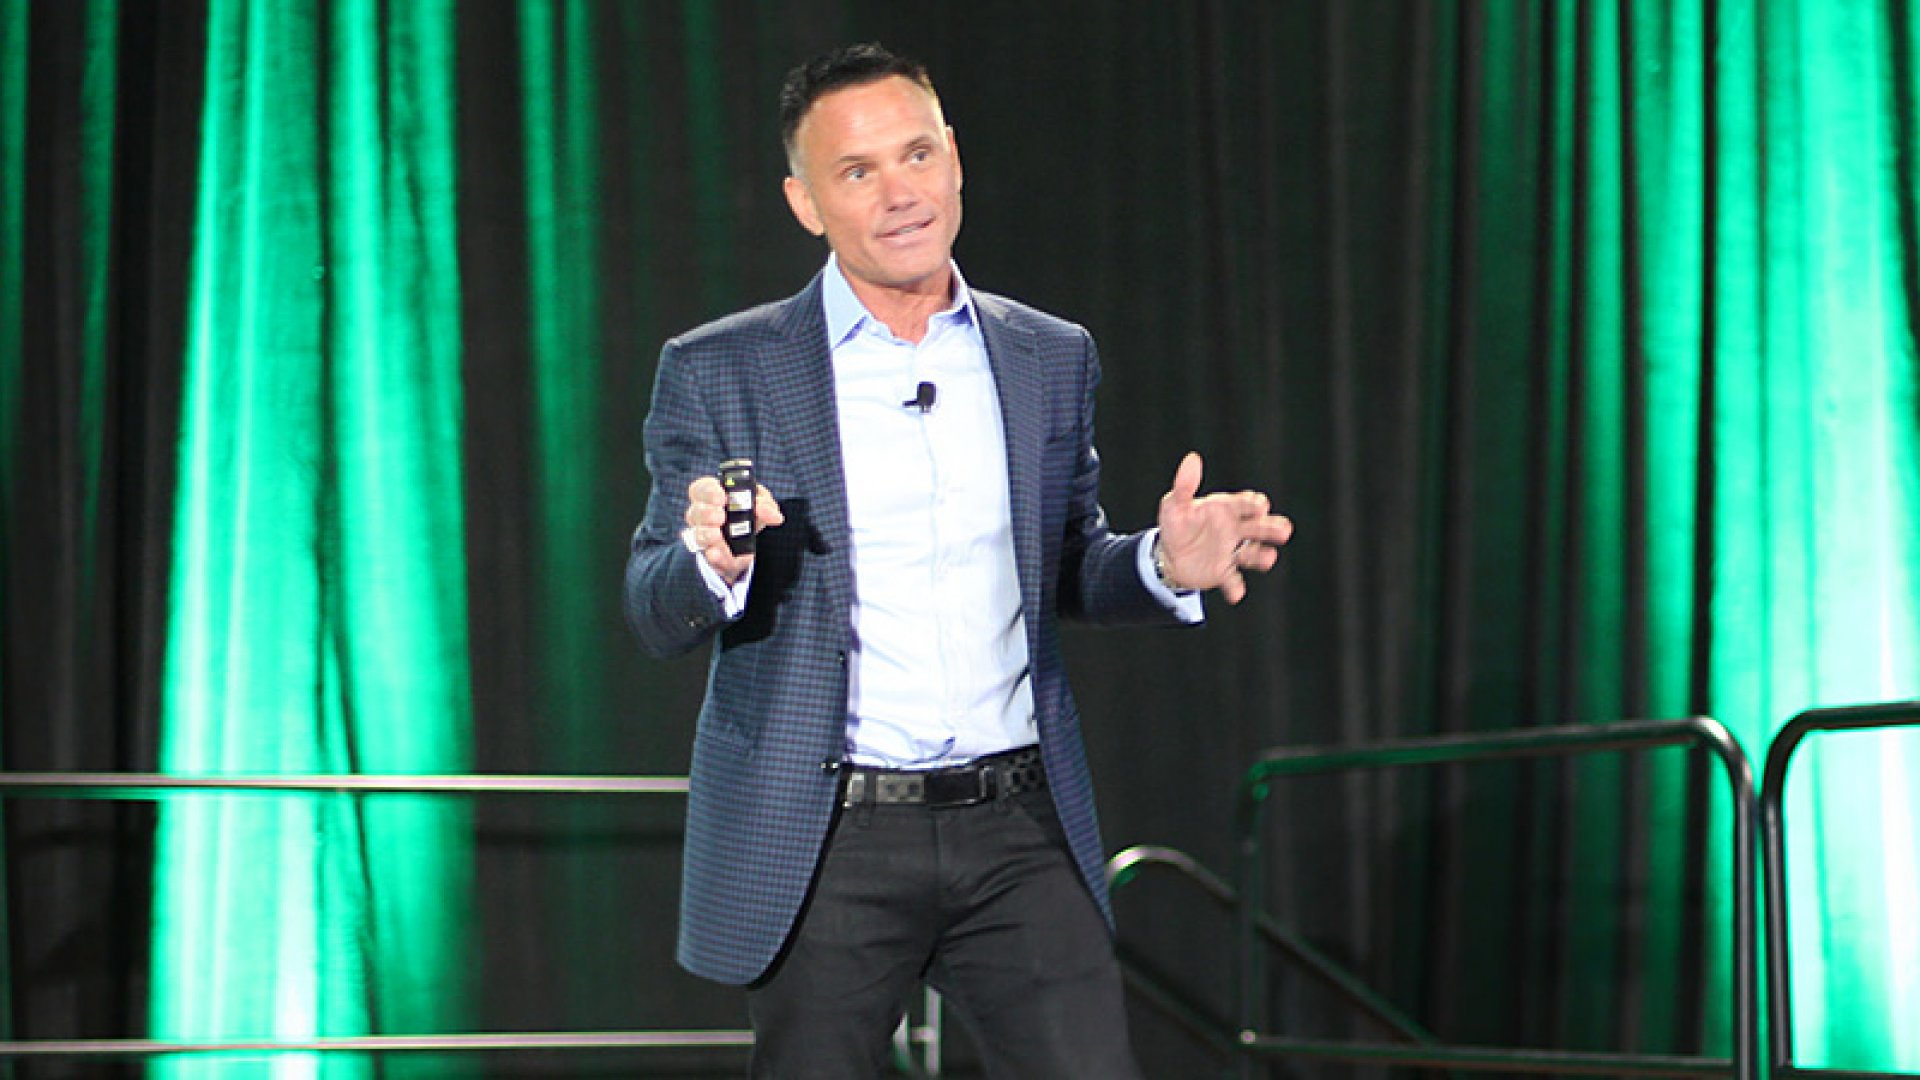 Kevin Harrington, one of the original sharks on ABC's <em>Shark Tank</em>, gave the keynote speech at the Marijuana Investor Summit in Denver on April 21, 2015. Harrington says the cannabis industry could be worth $200 billion by 2030.